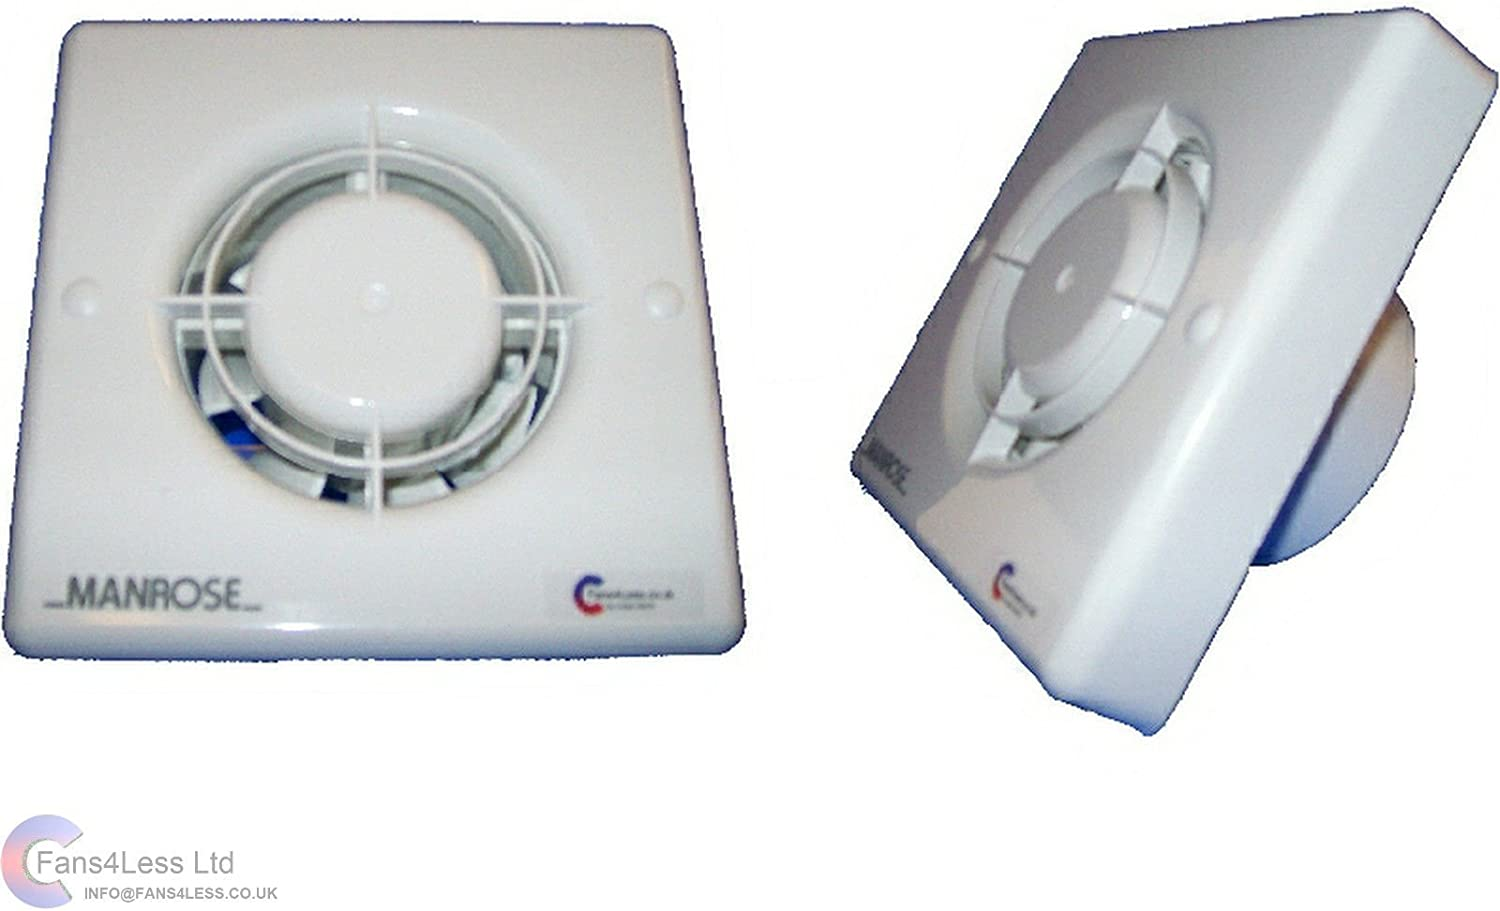 Timer Model 100mm 4 Inch SELV 12V Suitable for use within Zone 1 by Air Vent Airvent 434399 Low Voltage Axial Extractor Fan /& Transformer Kit